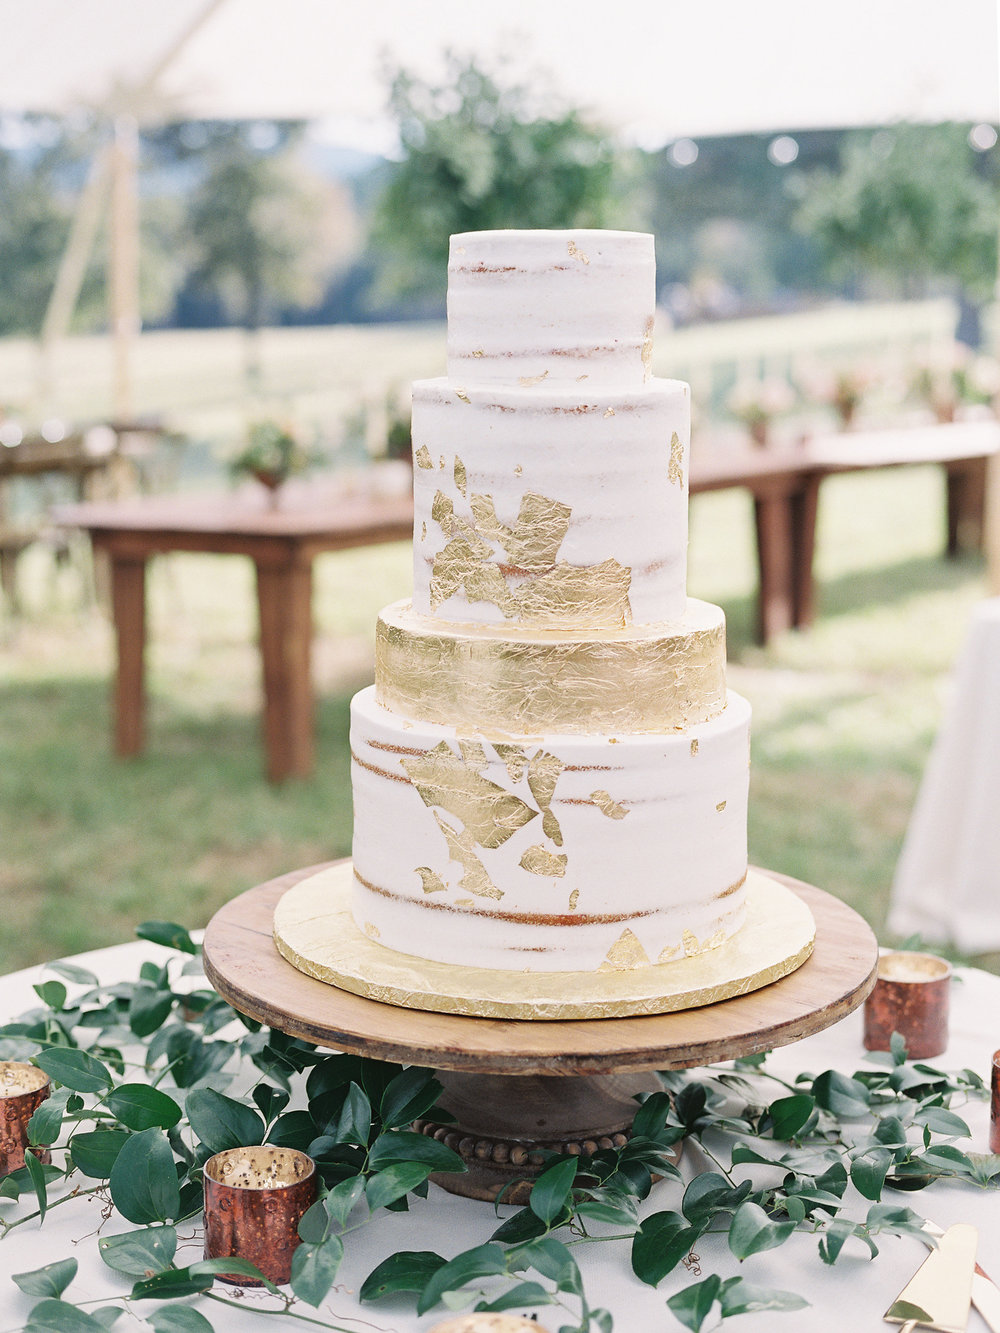 jessica-zimmerman-events-heather-payne-dan-and-shay-arkansas-wedding-cake.jpg